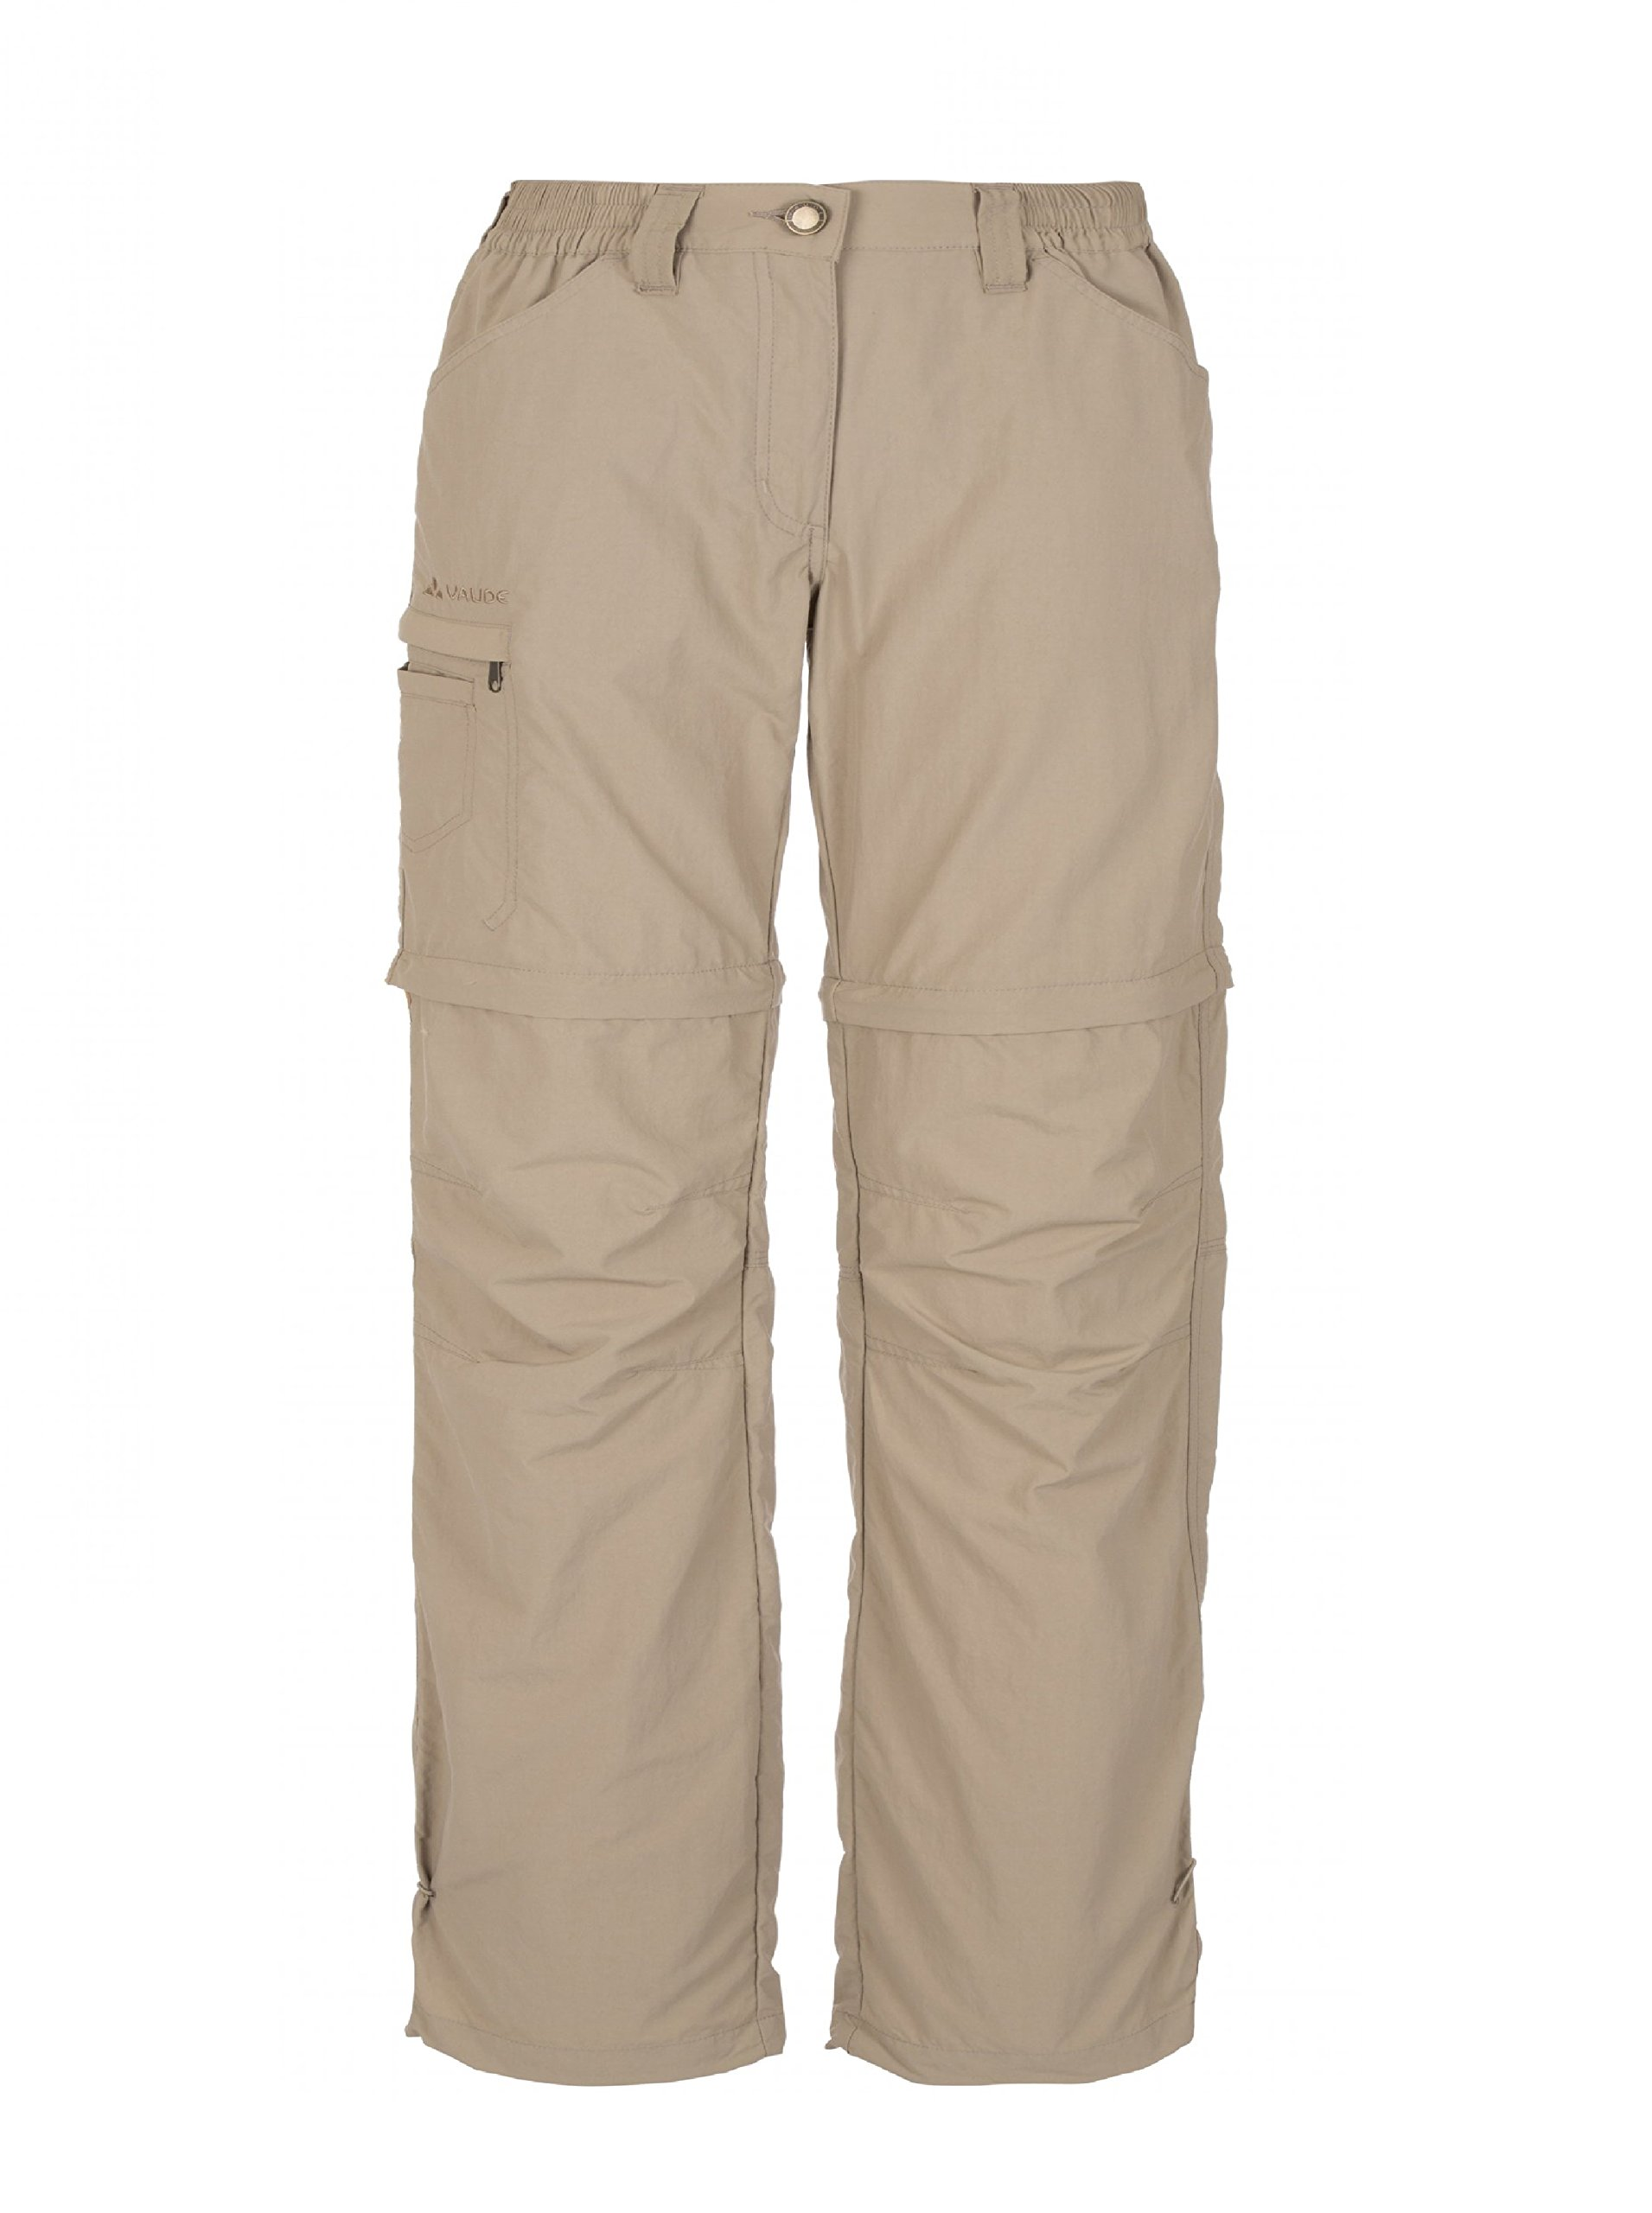 VAUDE Women's Farley ZO Pants IV – Women's Hiking Pants – Women's Convertible Hiking Pants for Easy Care and Staying Cool – Zip-off Pants